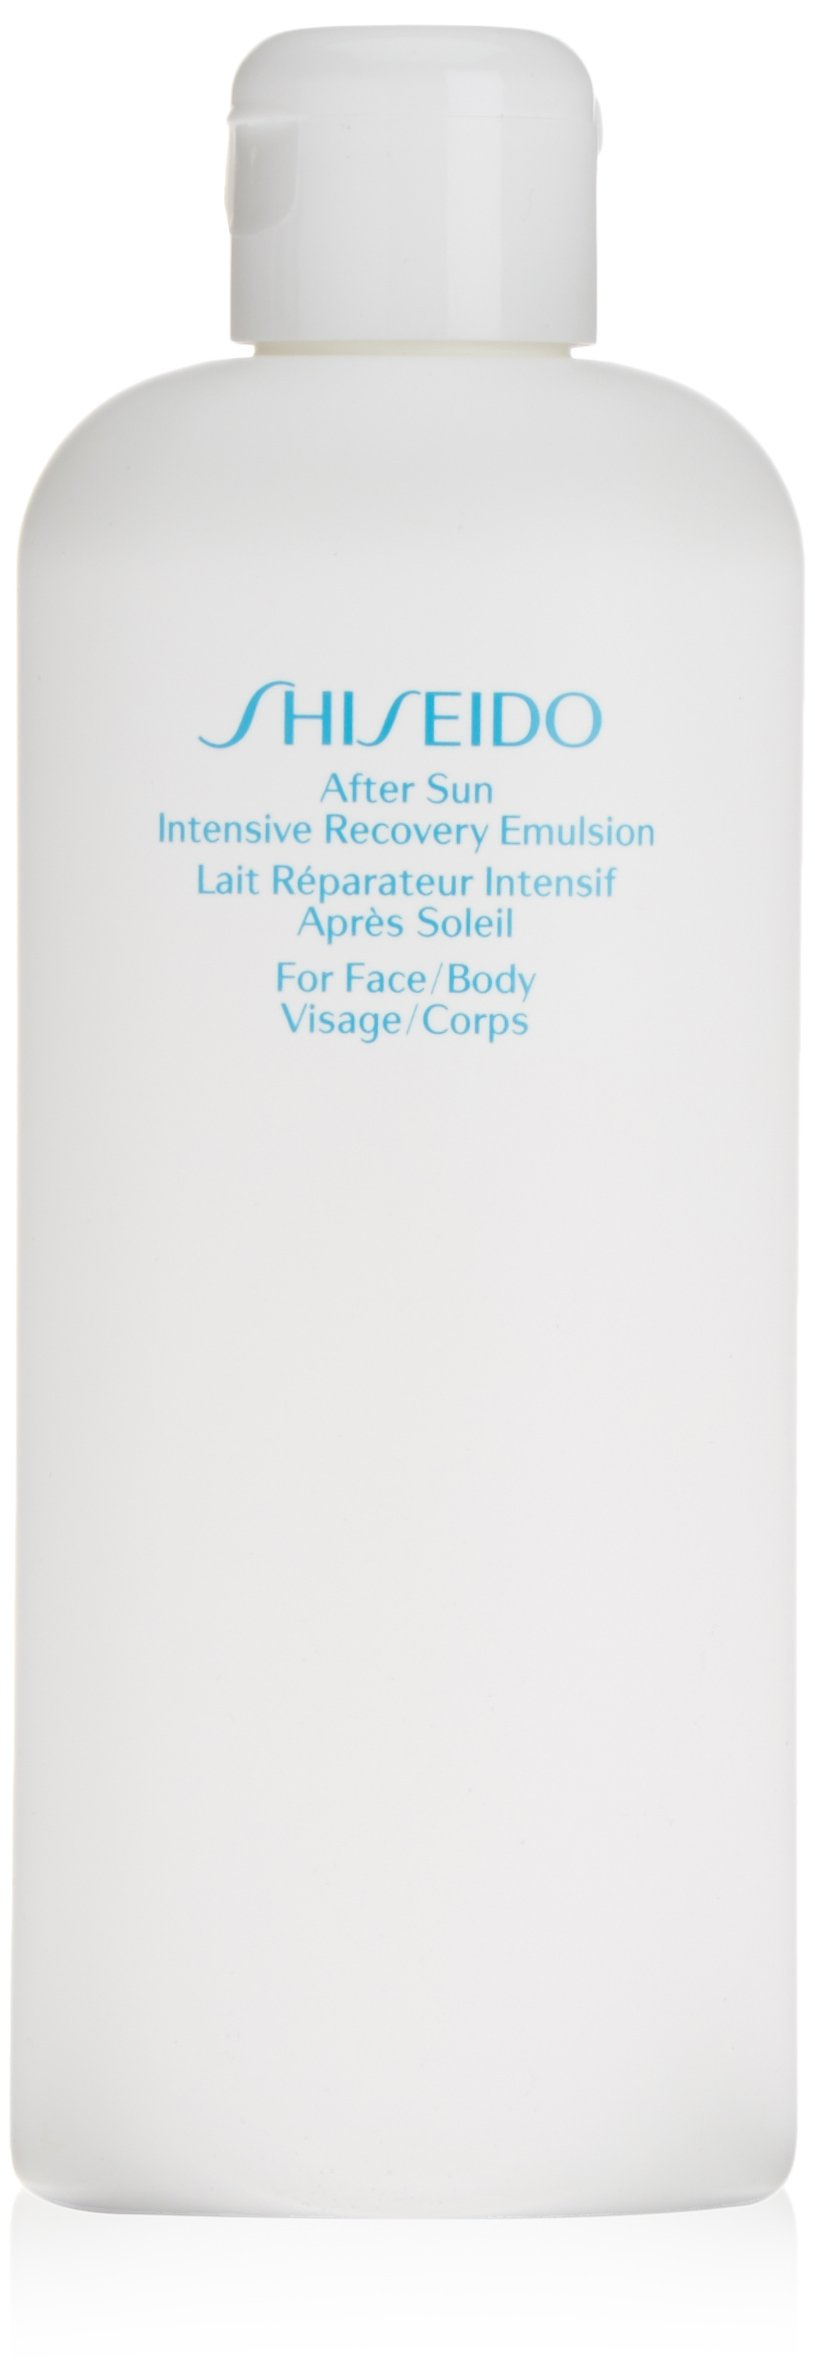 Shiseido After Sun Intensive Recovery Emulsion - For Face & Body 400ml/13.3oz by Shiseido